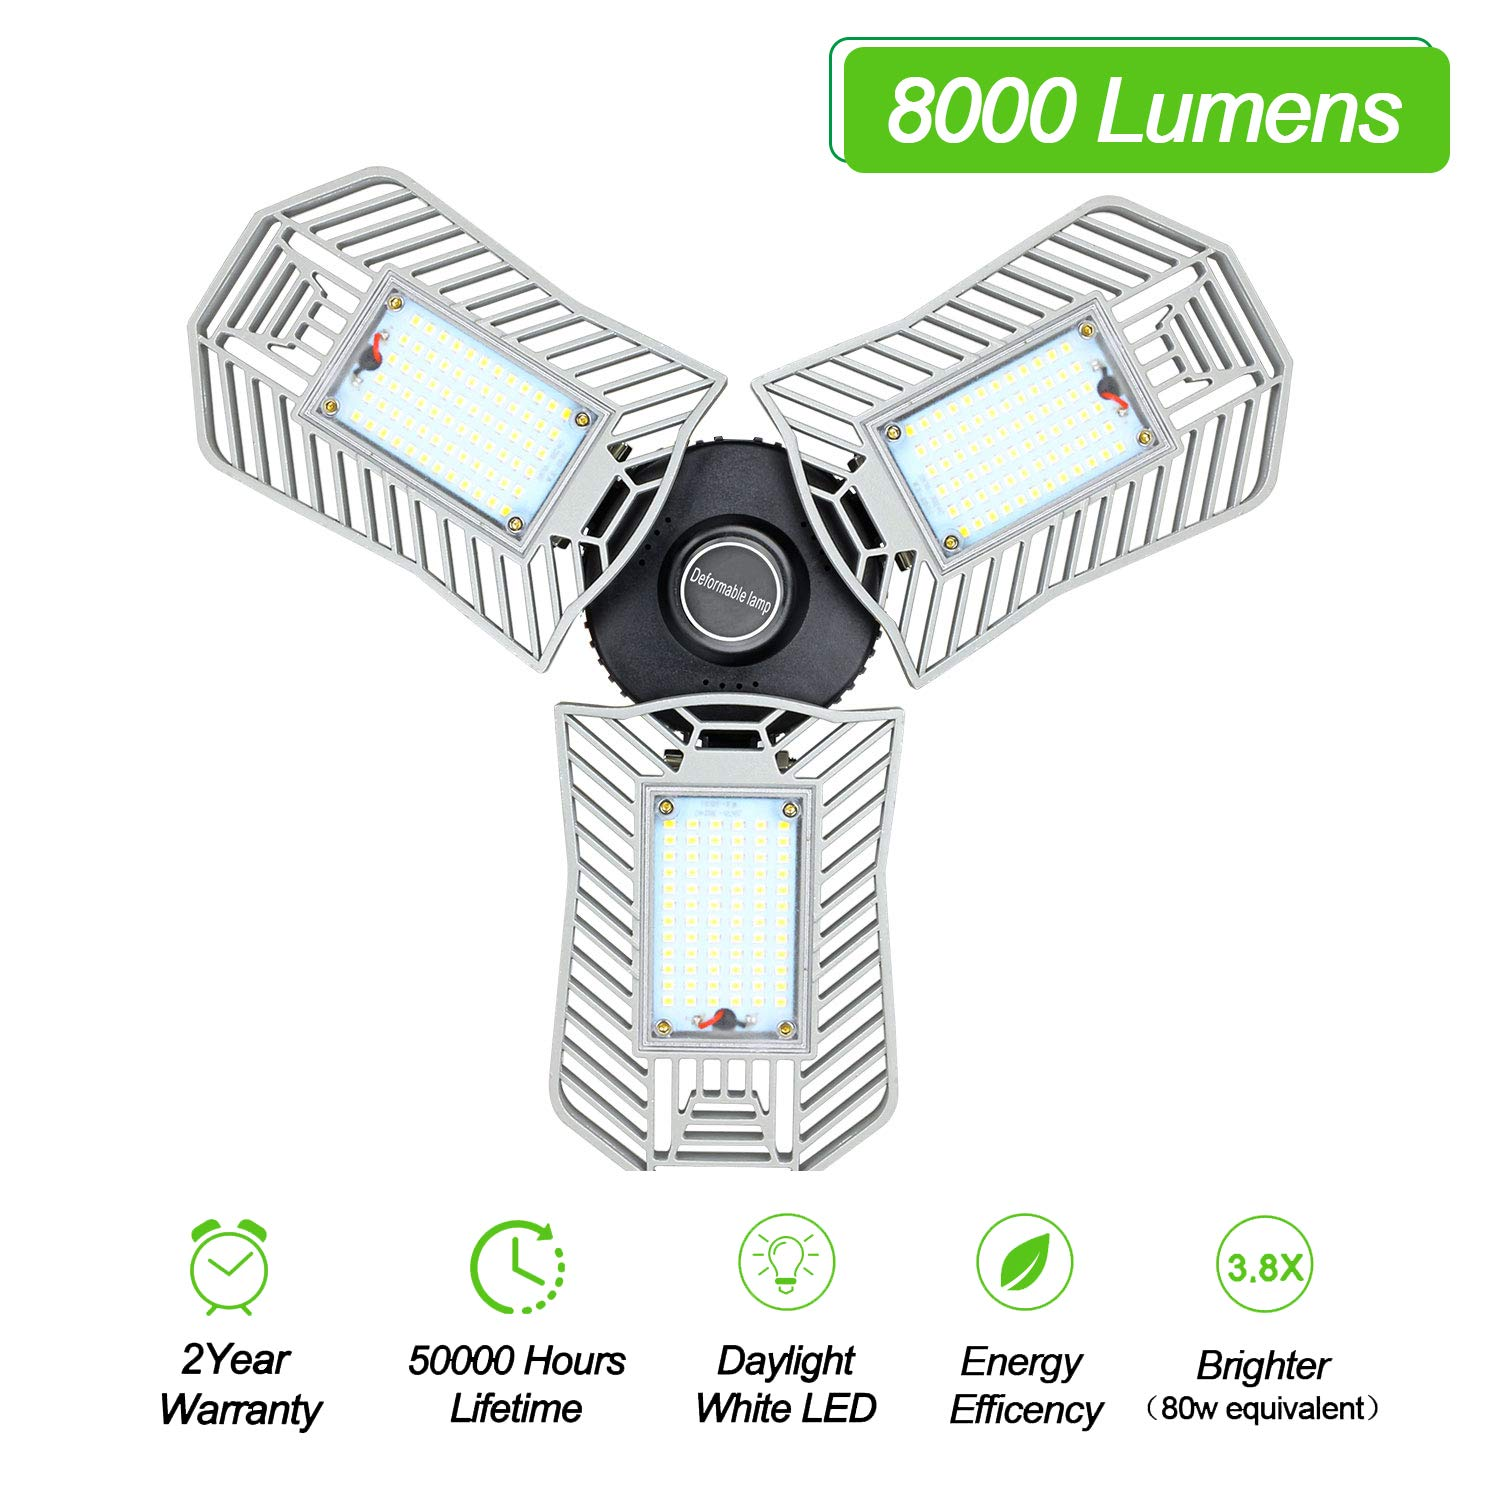 Garage Light Led 8000 Lumen 360° Wide Angle Screw-in 80W 216pcs LED Diodes with 3 Adjustable Panels for Garage Workshop Basement(No Motion Activated)